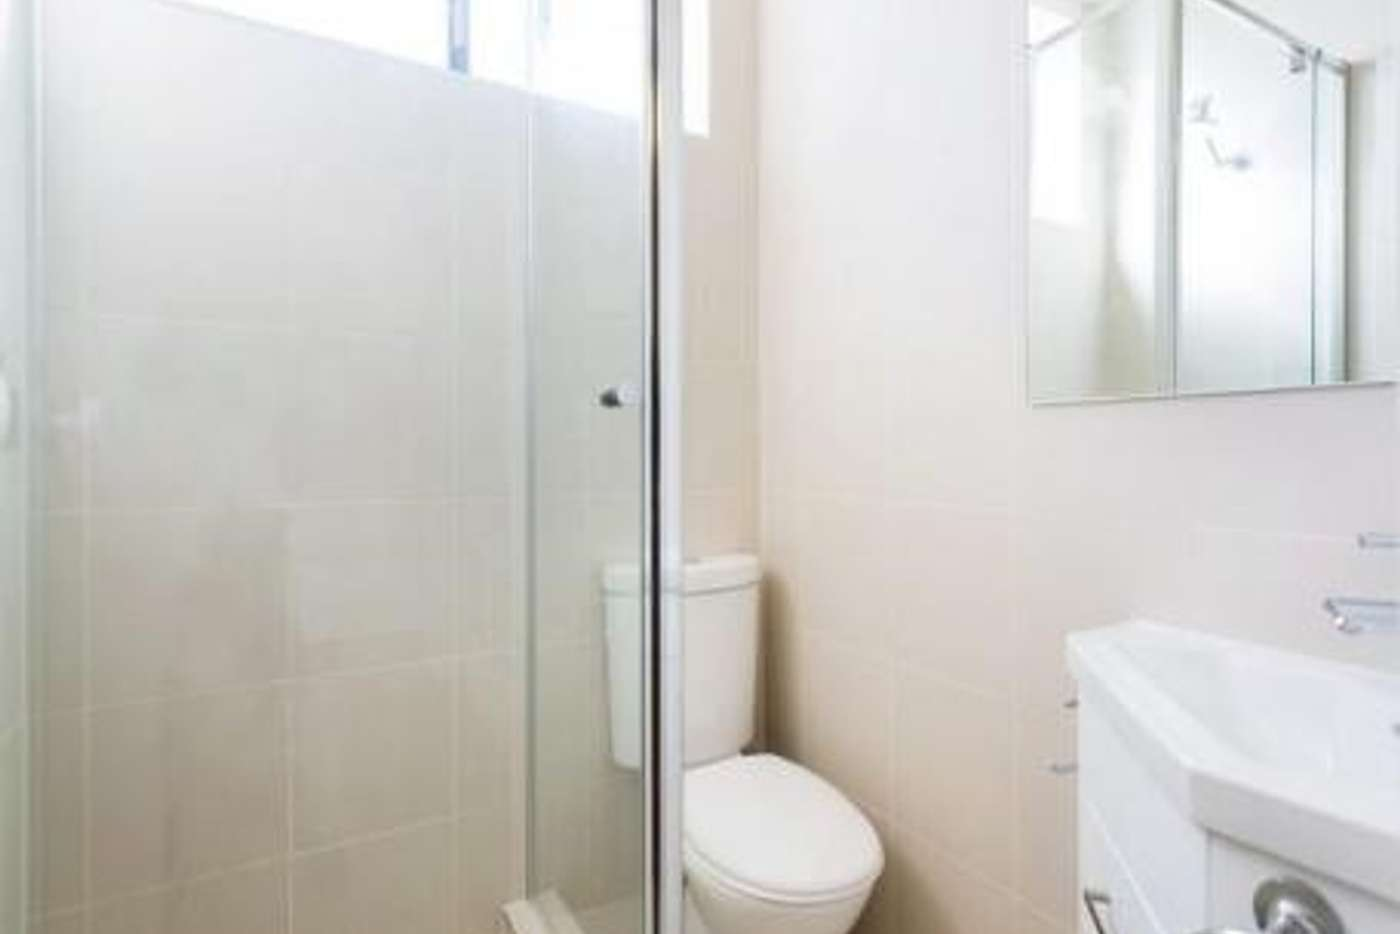 Sixth view of Homely apartment listing, 10/38 Charnwood Road, St Kilda VIC 3182